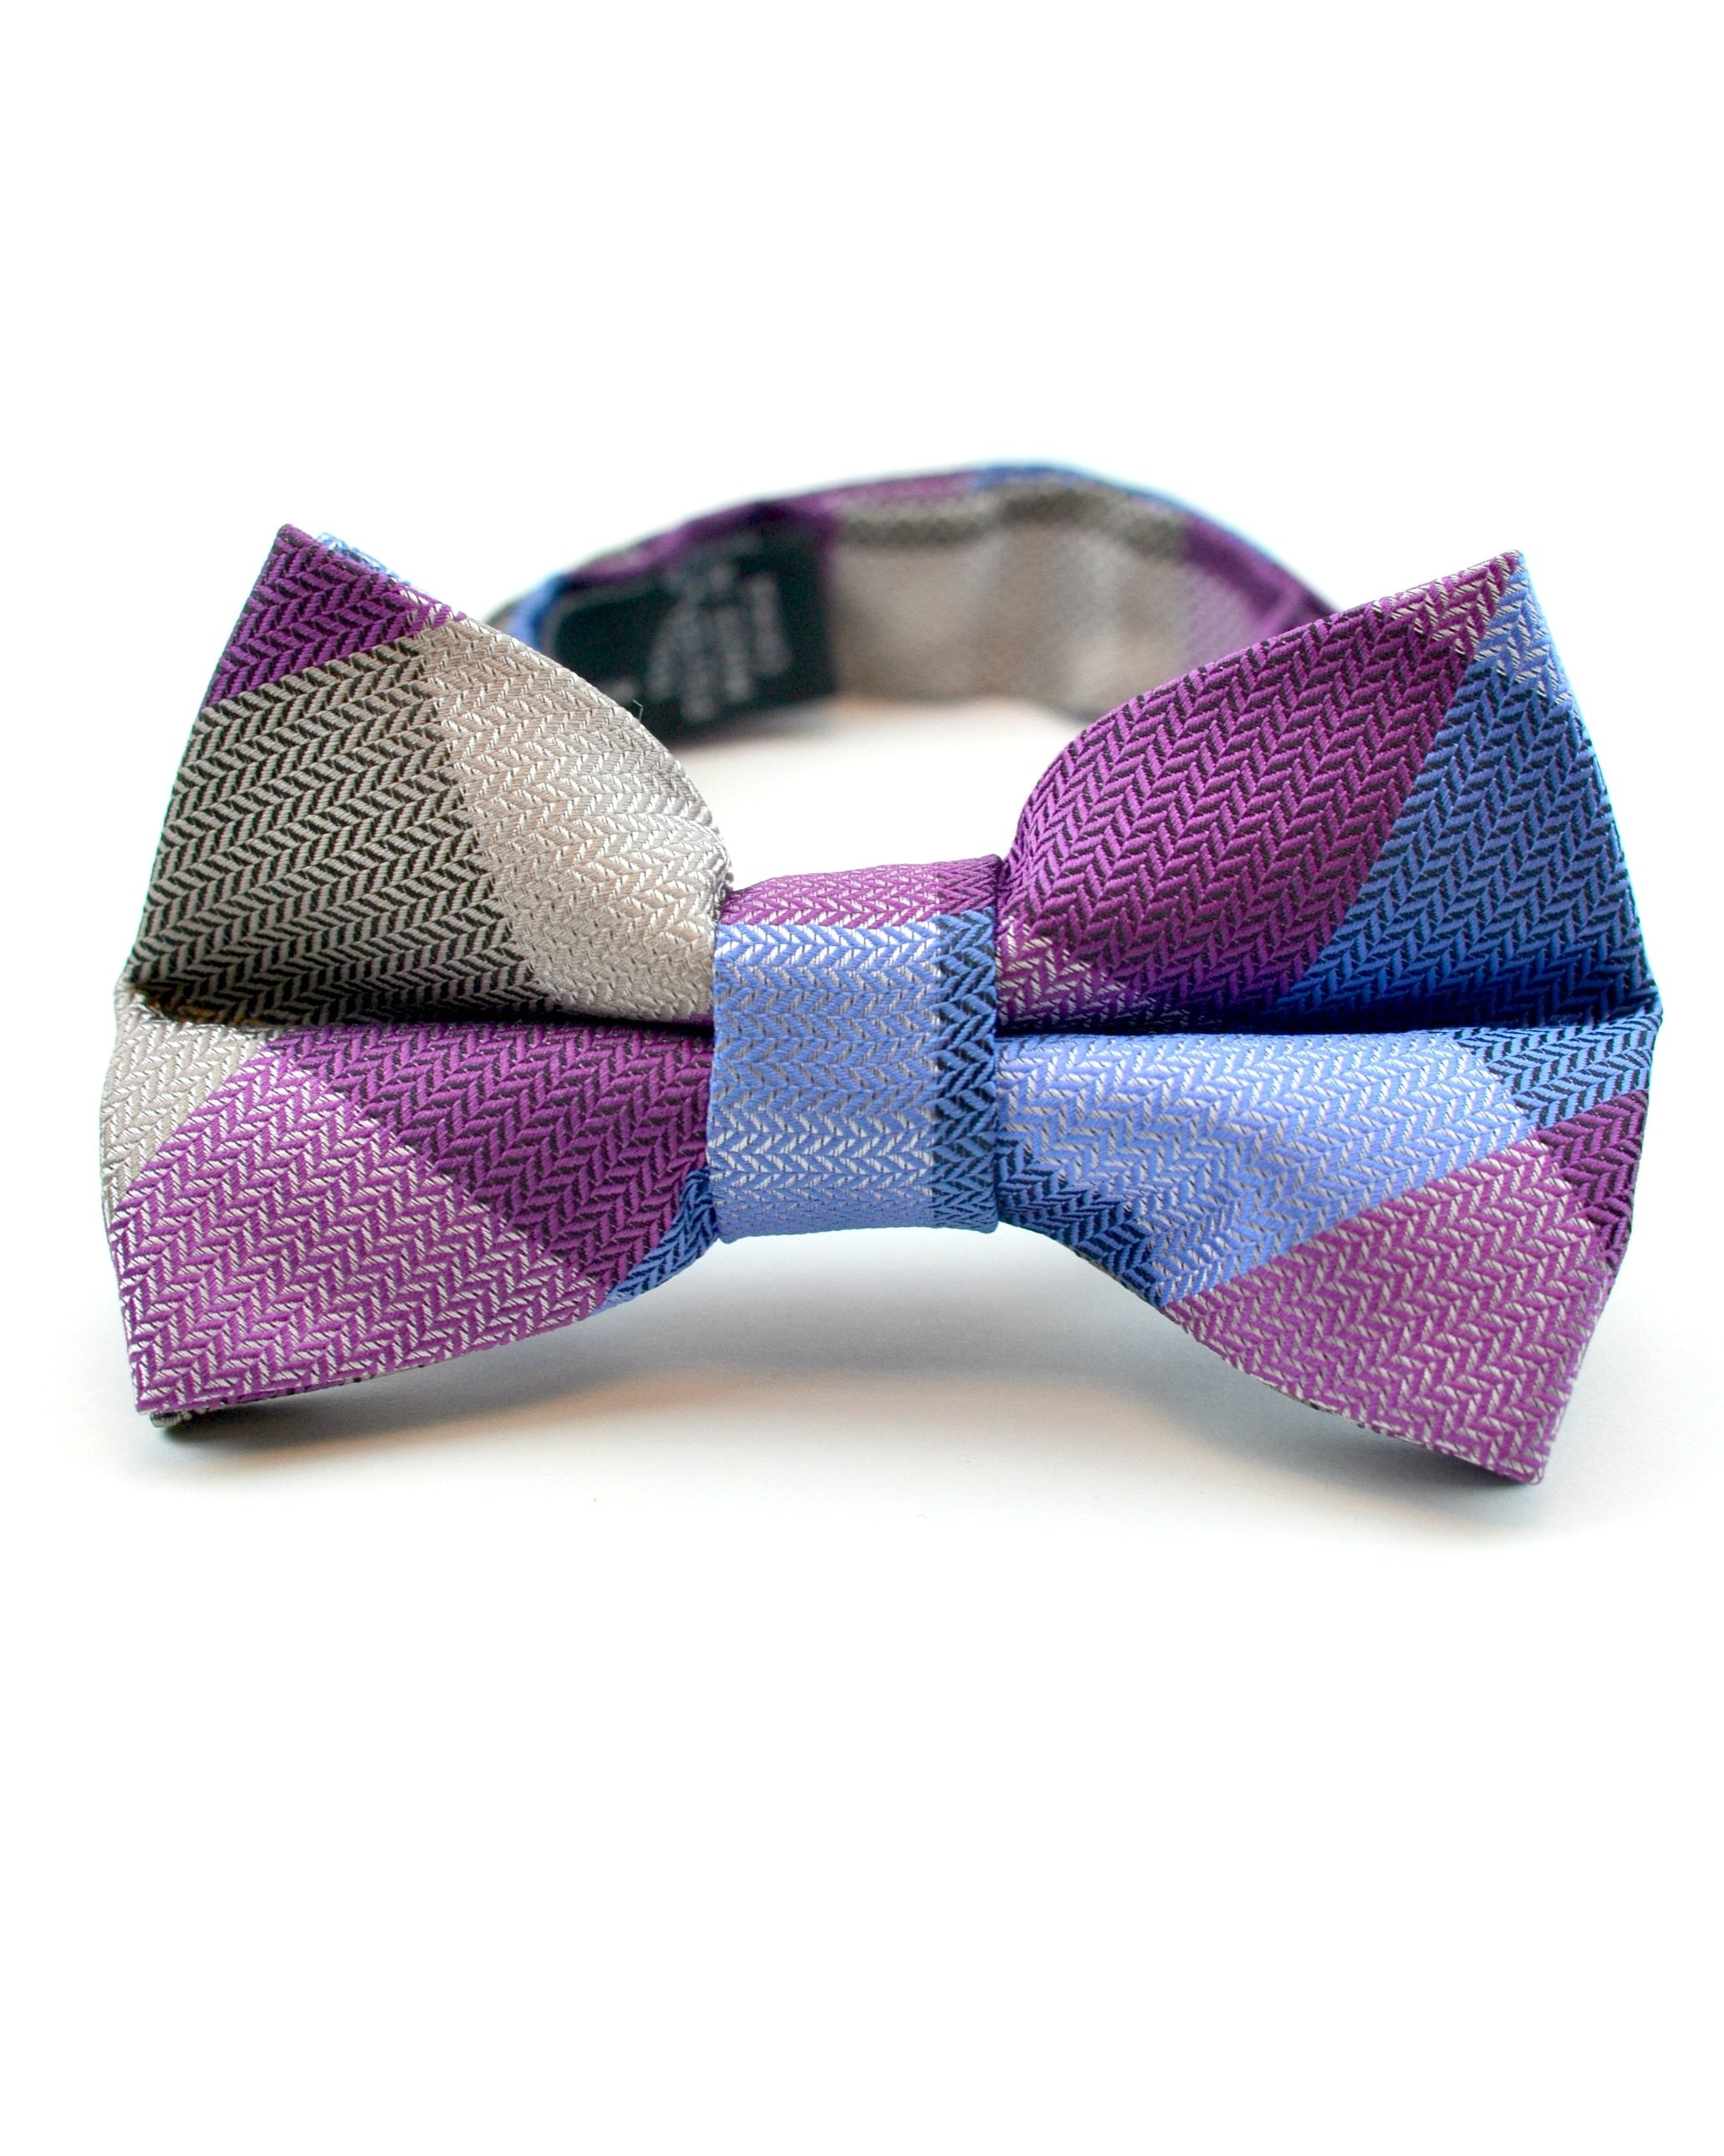 plum-and-periwinkle-check-bow.jpg